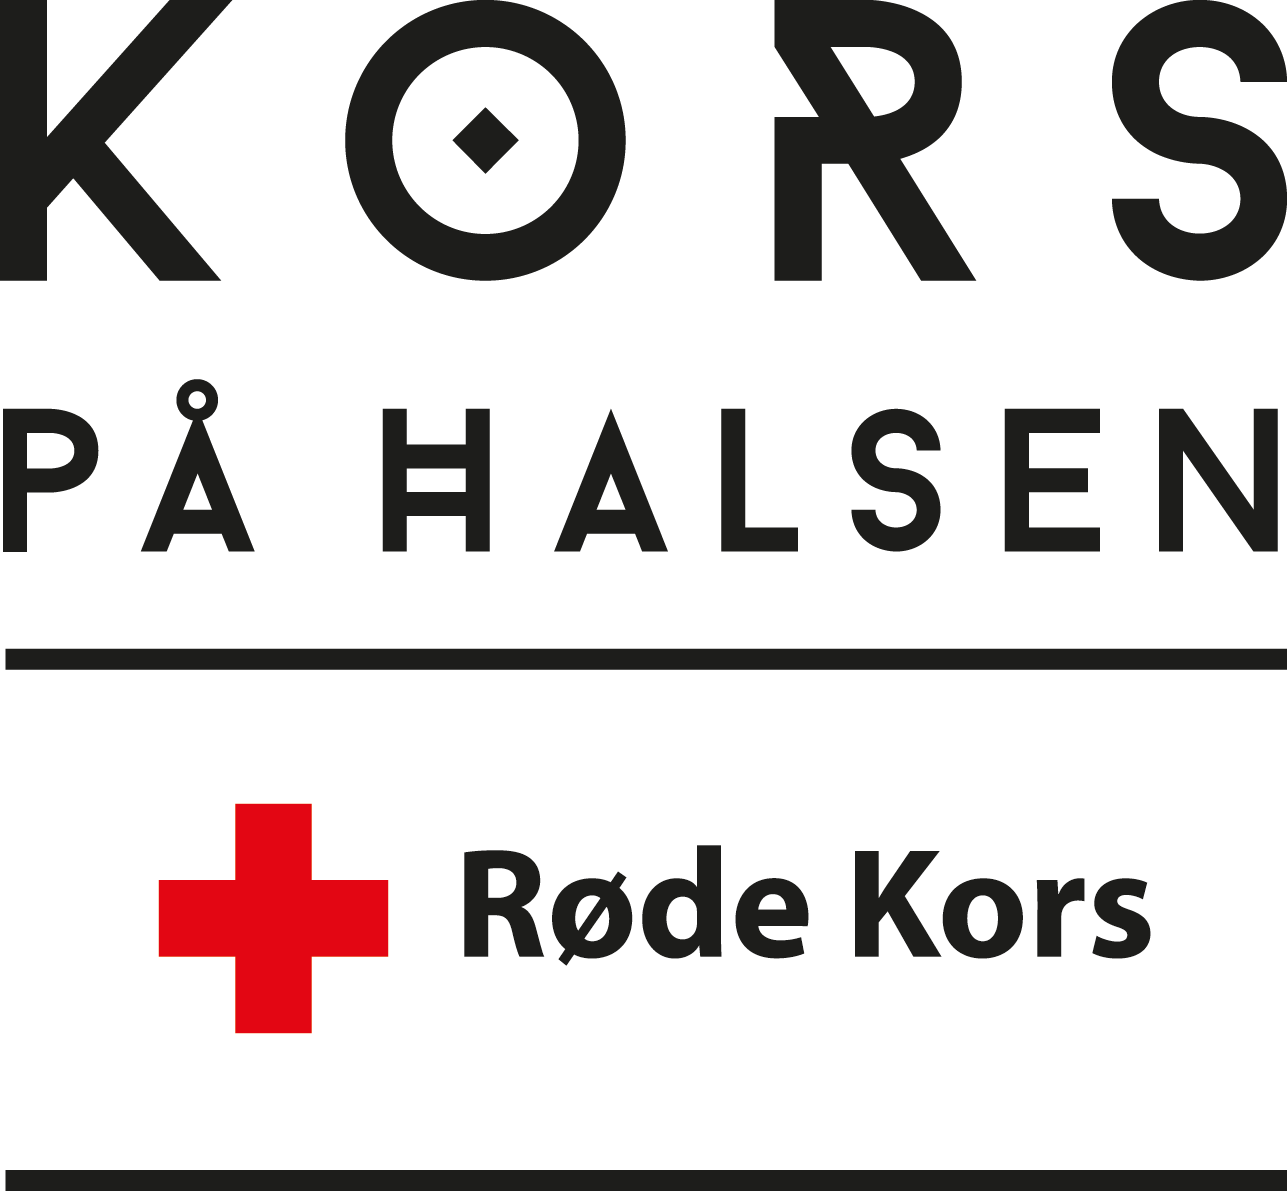 Norwegian helpline logo